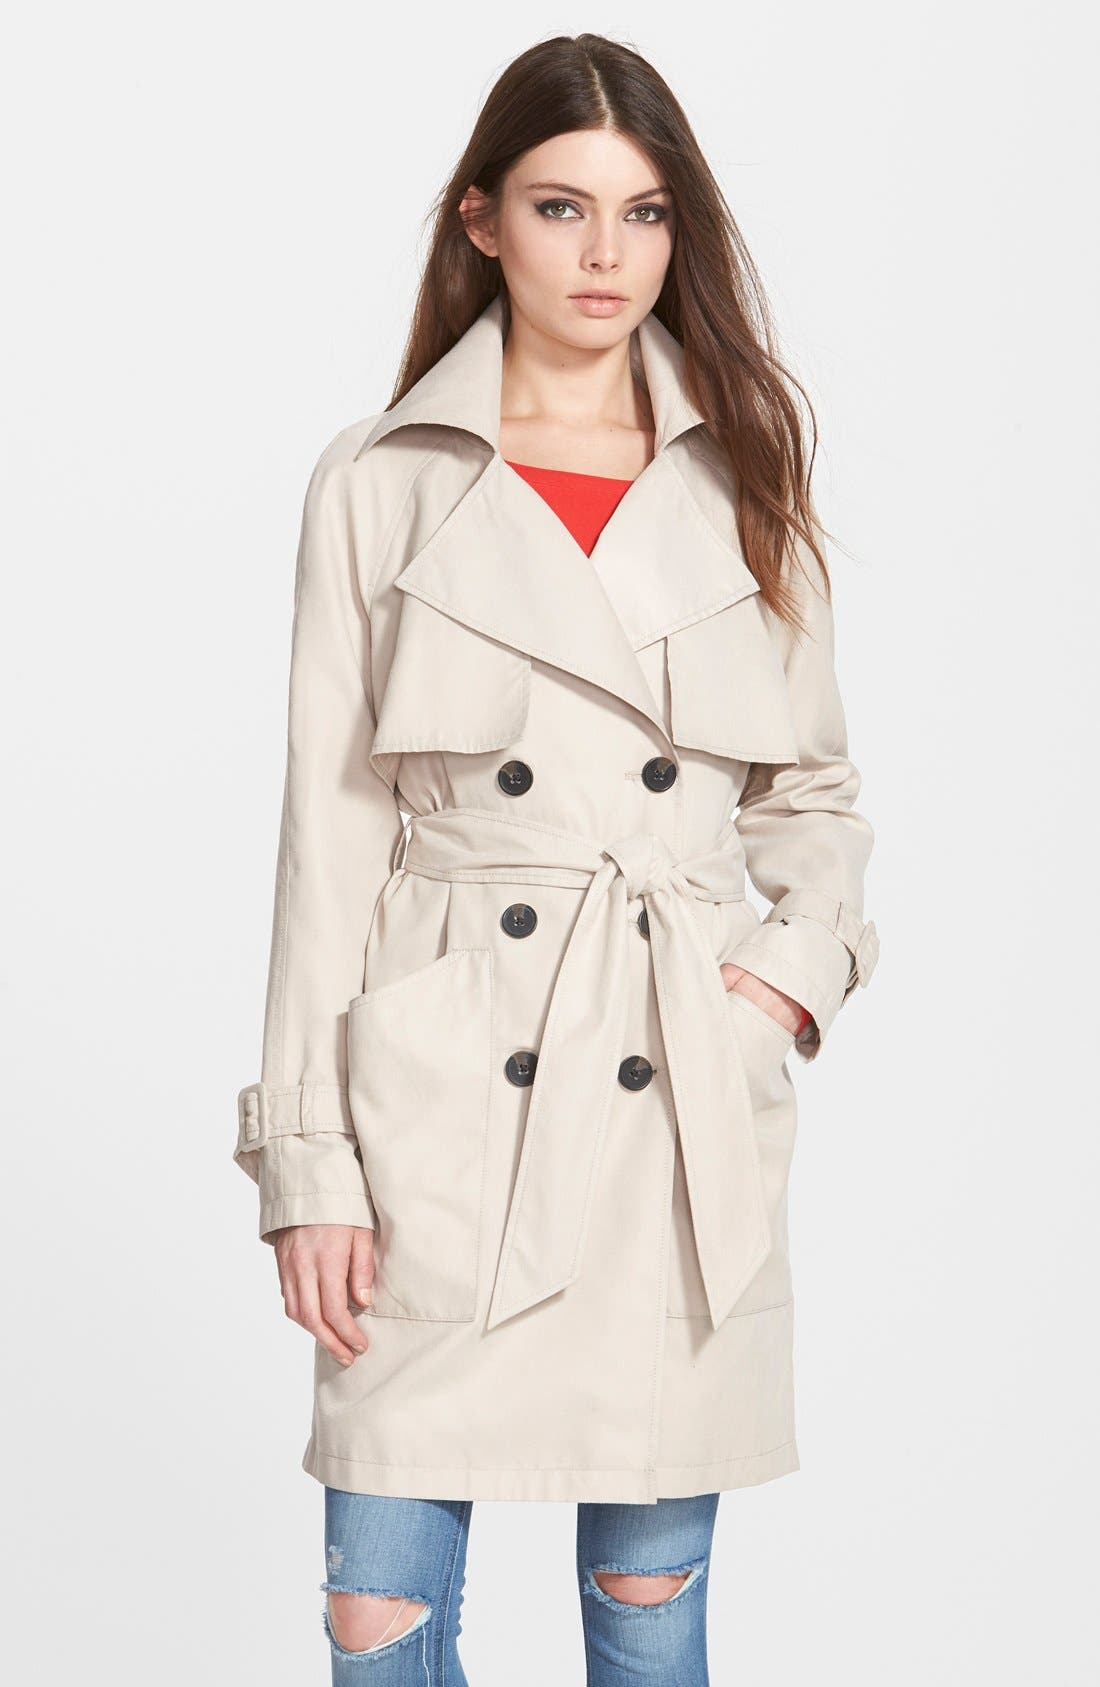 Alternate Image 1 Selected - BCBGeneration Patch Pocket Double Breasted Trench Coat